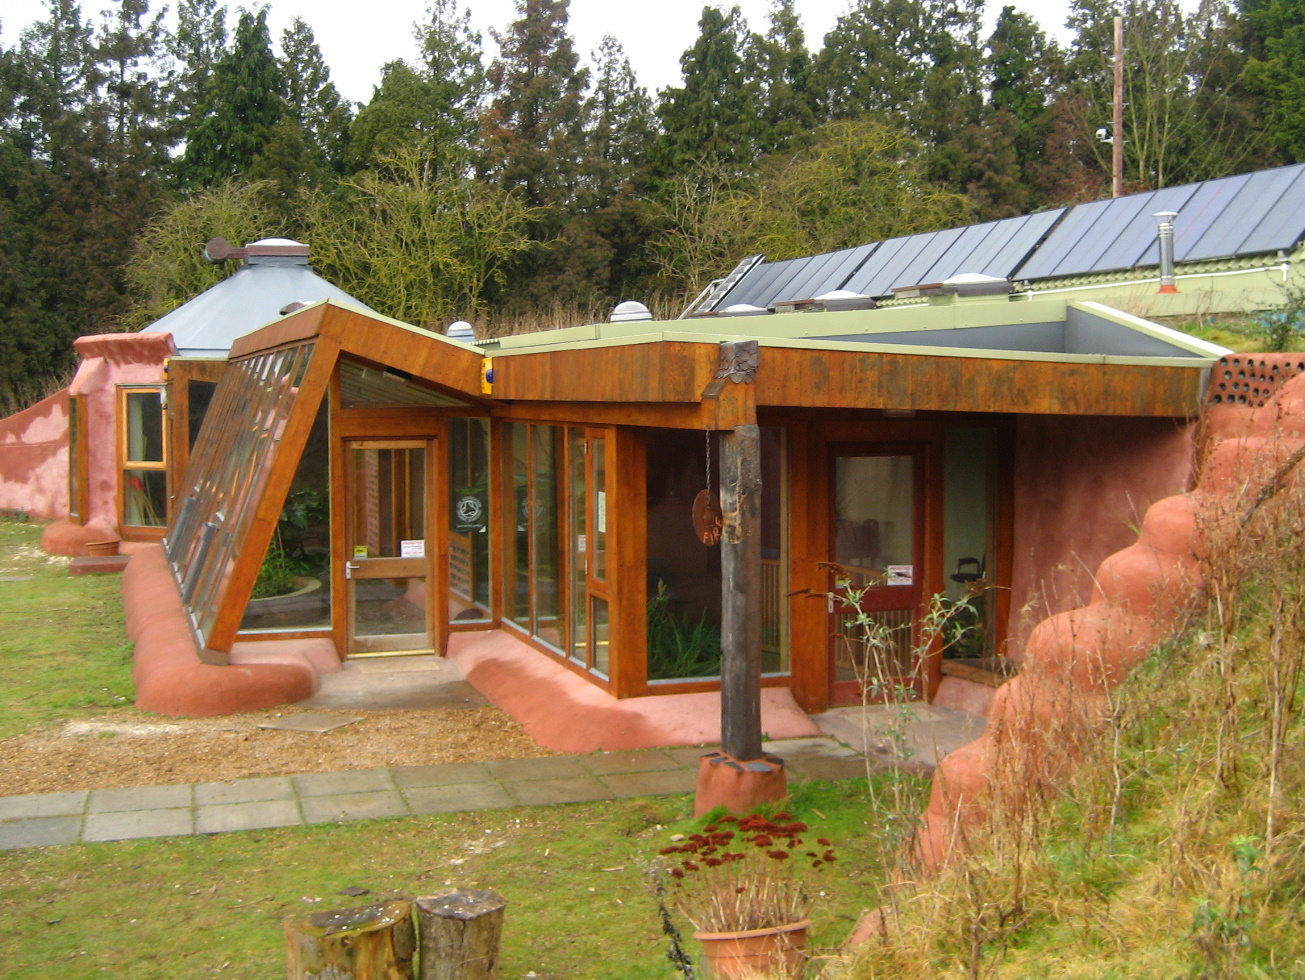 Image of the Earthship at Stanmer Park in Brighton, UK. Photo: cc-by-3.0, Gazzat5